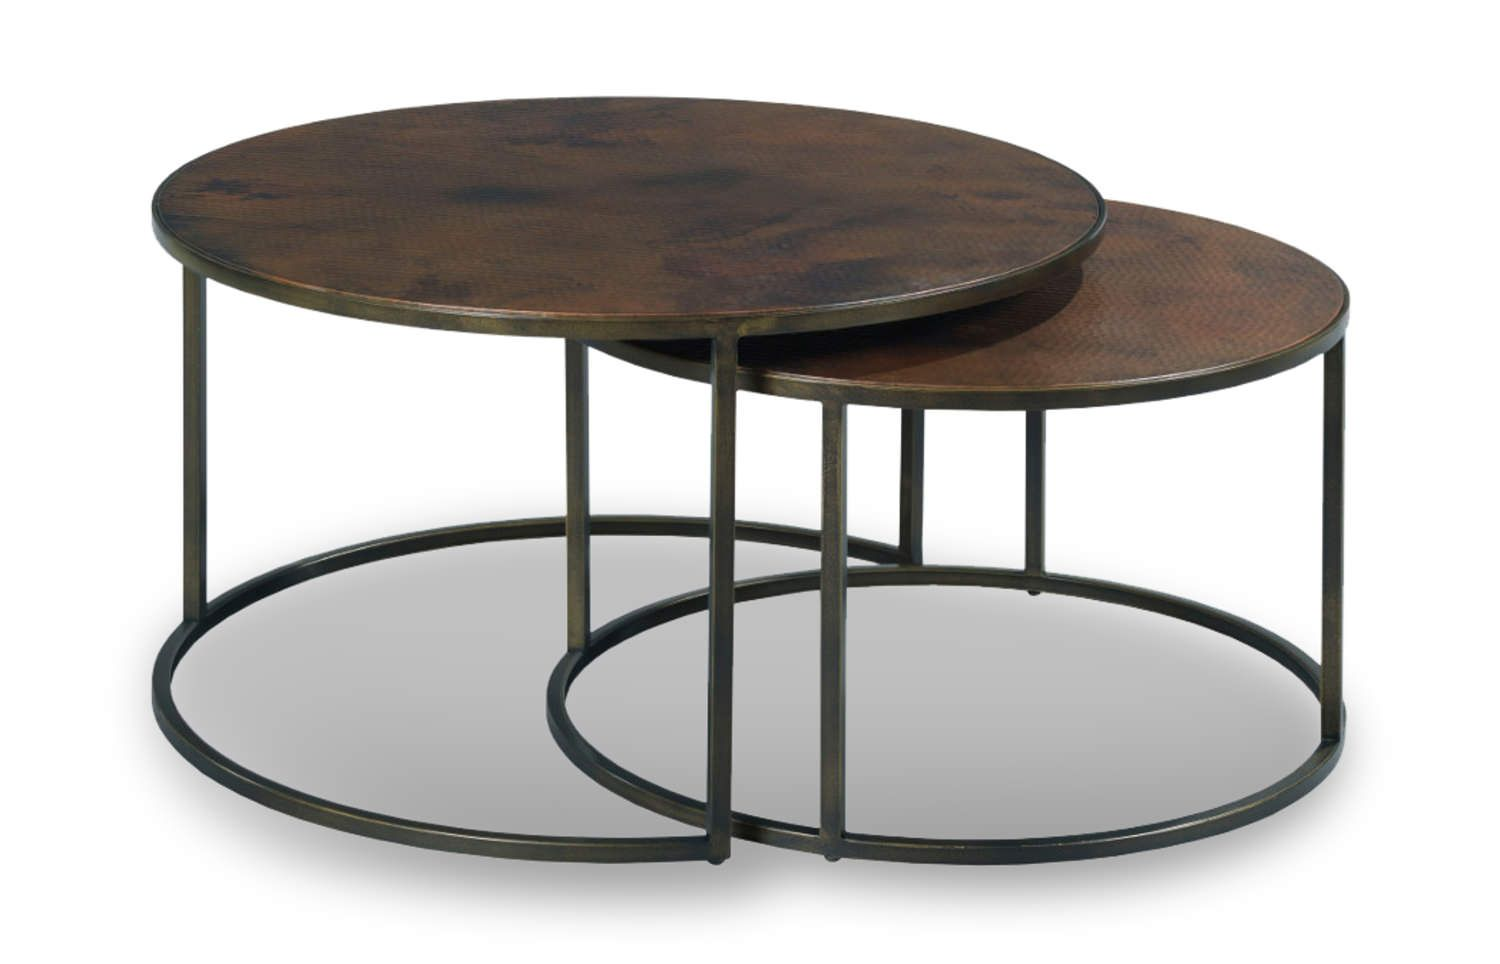 Sanford Bunching Coffee Tables Round Nesting